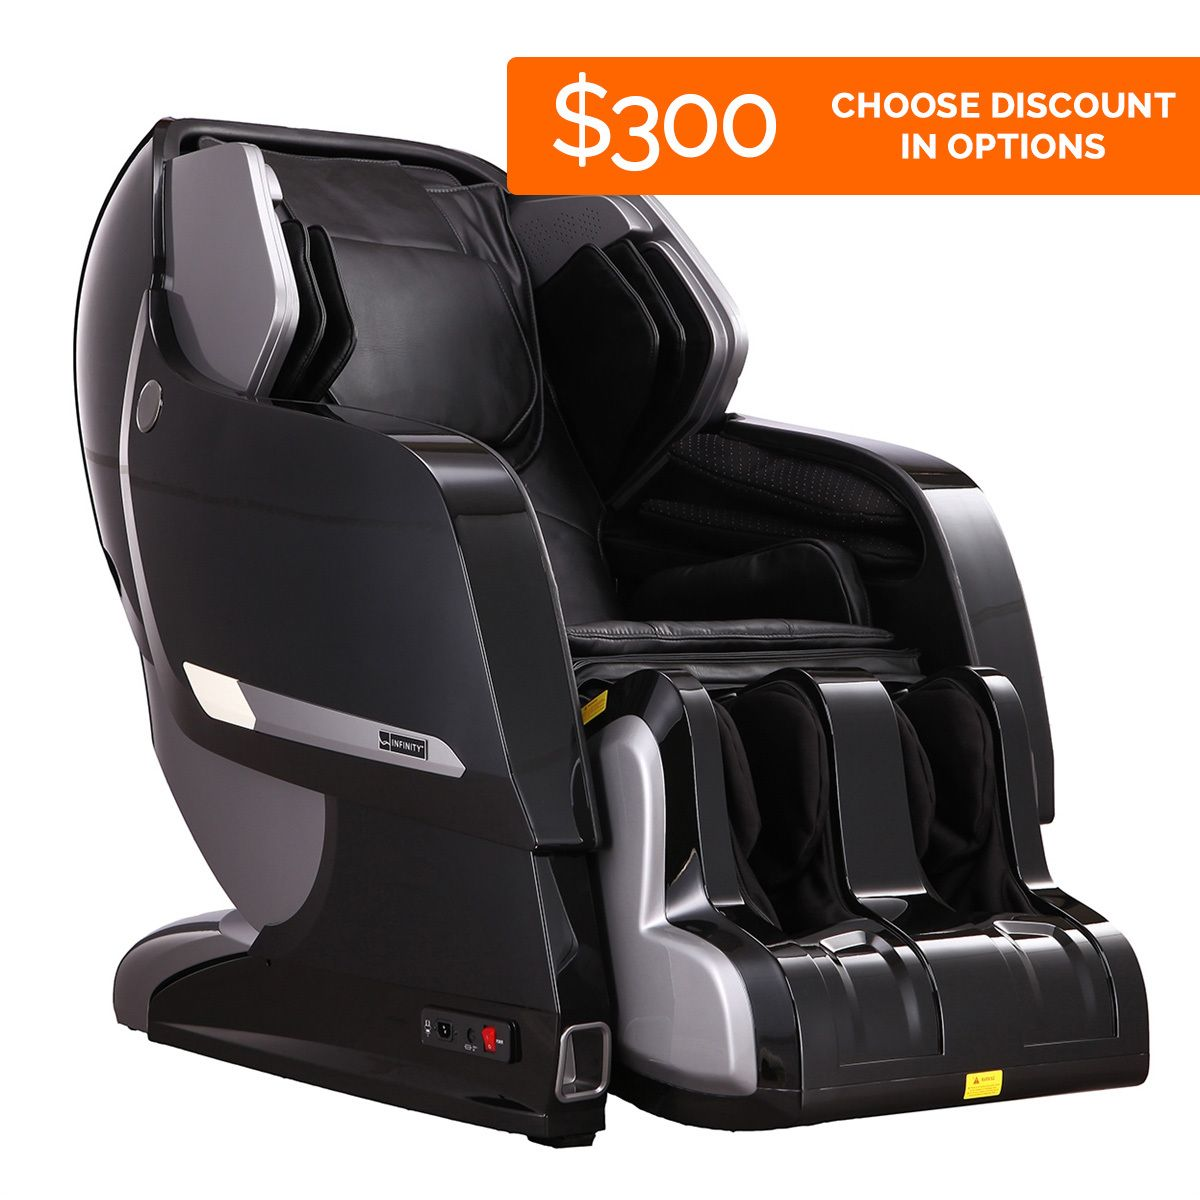 infinity iyashi massage chair bedplanet bedplanetcom bed planet - Massage Chair For Sale